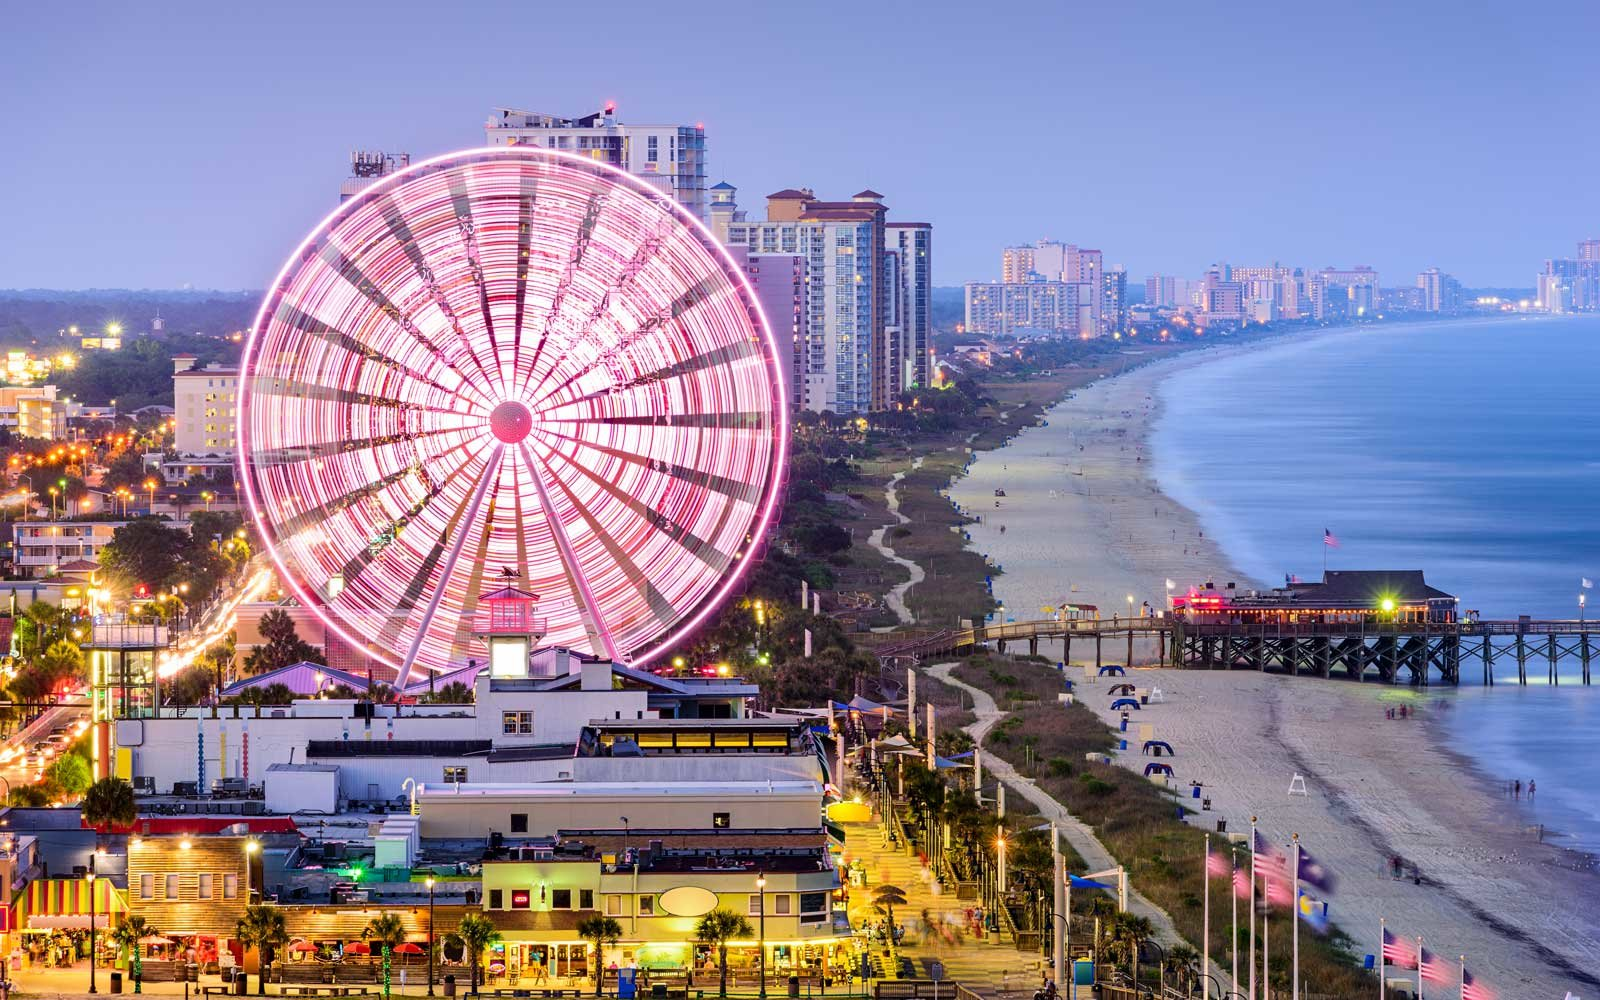 Ferris Wheel at Myrtle Beach, SC, at night